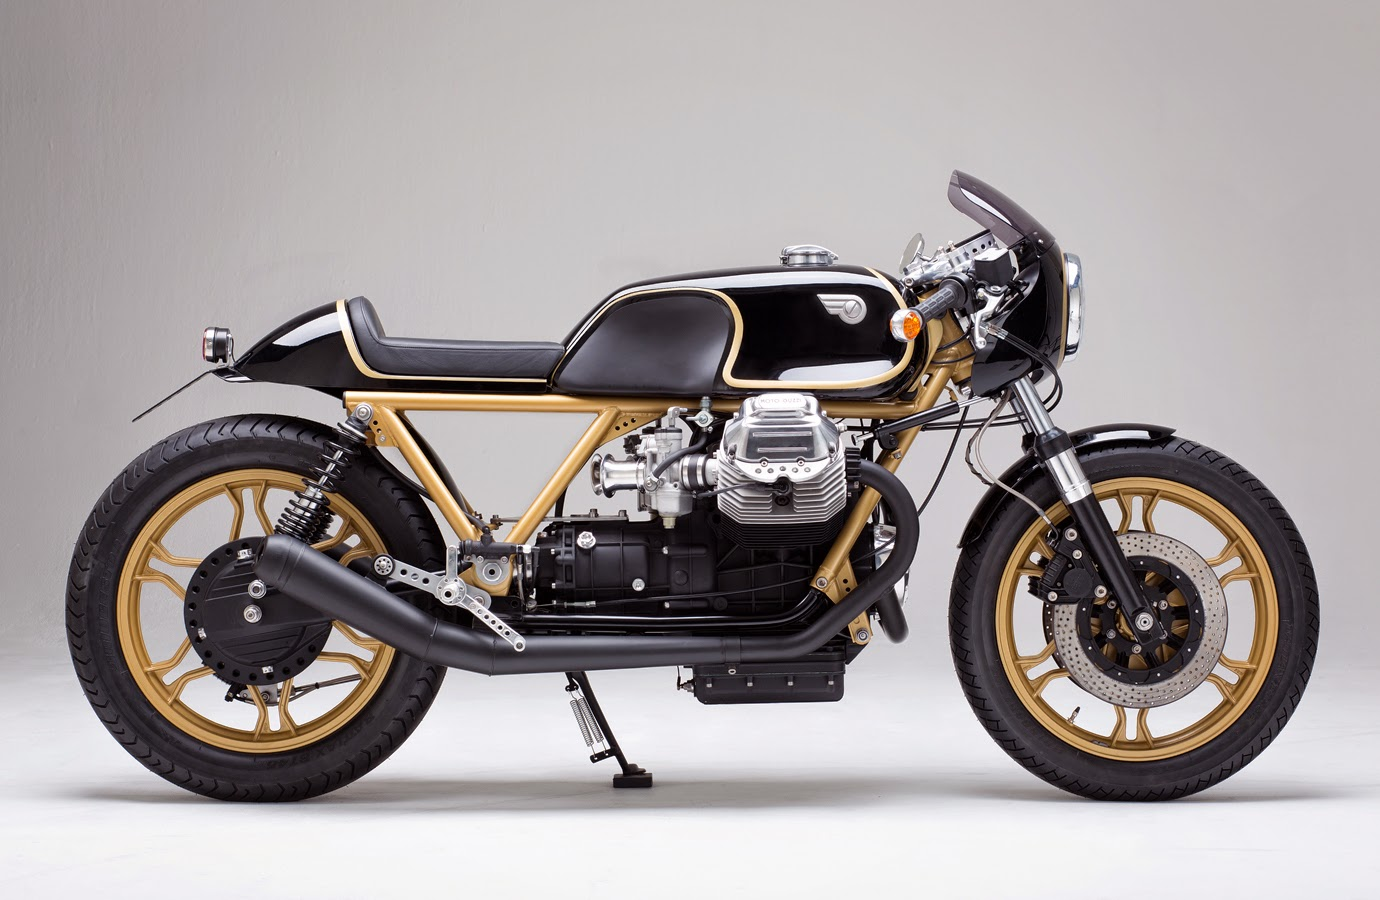 A Brief History Of The Moto Guzzi Le Mans